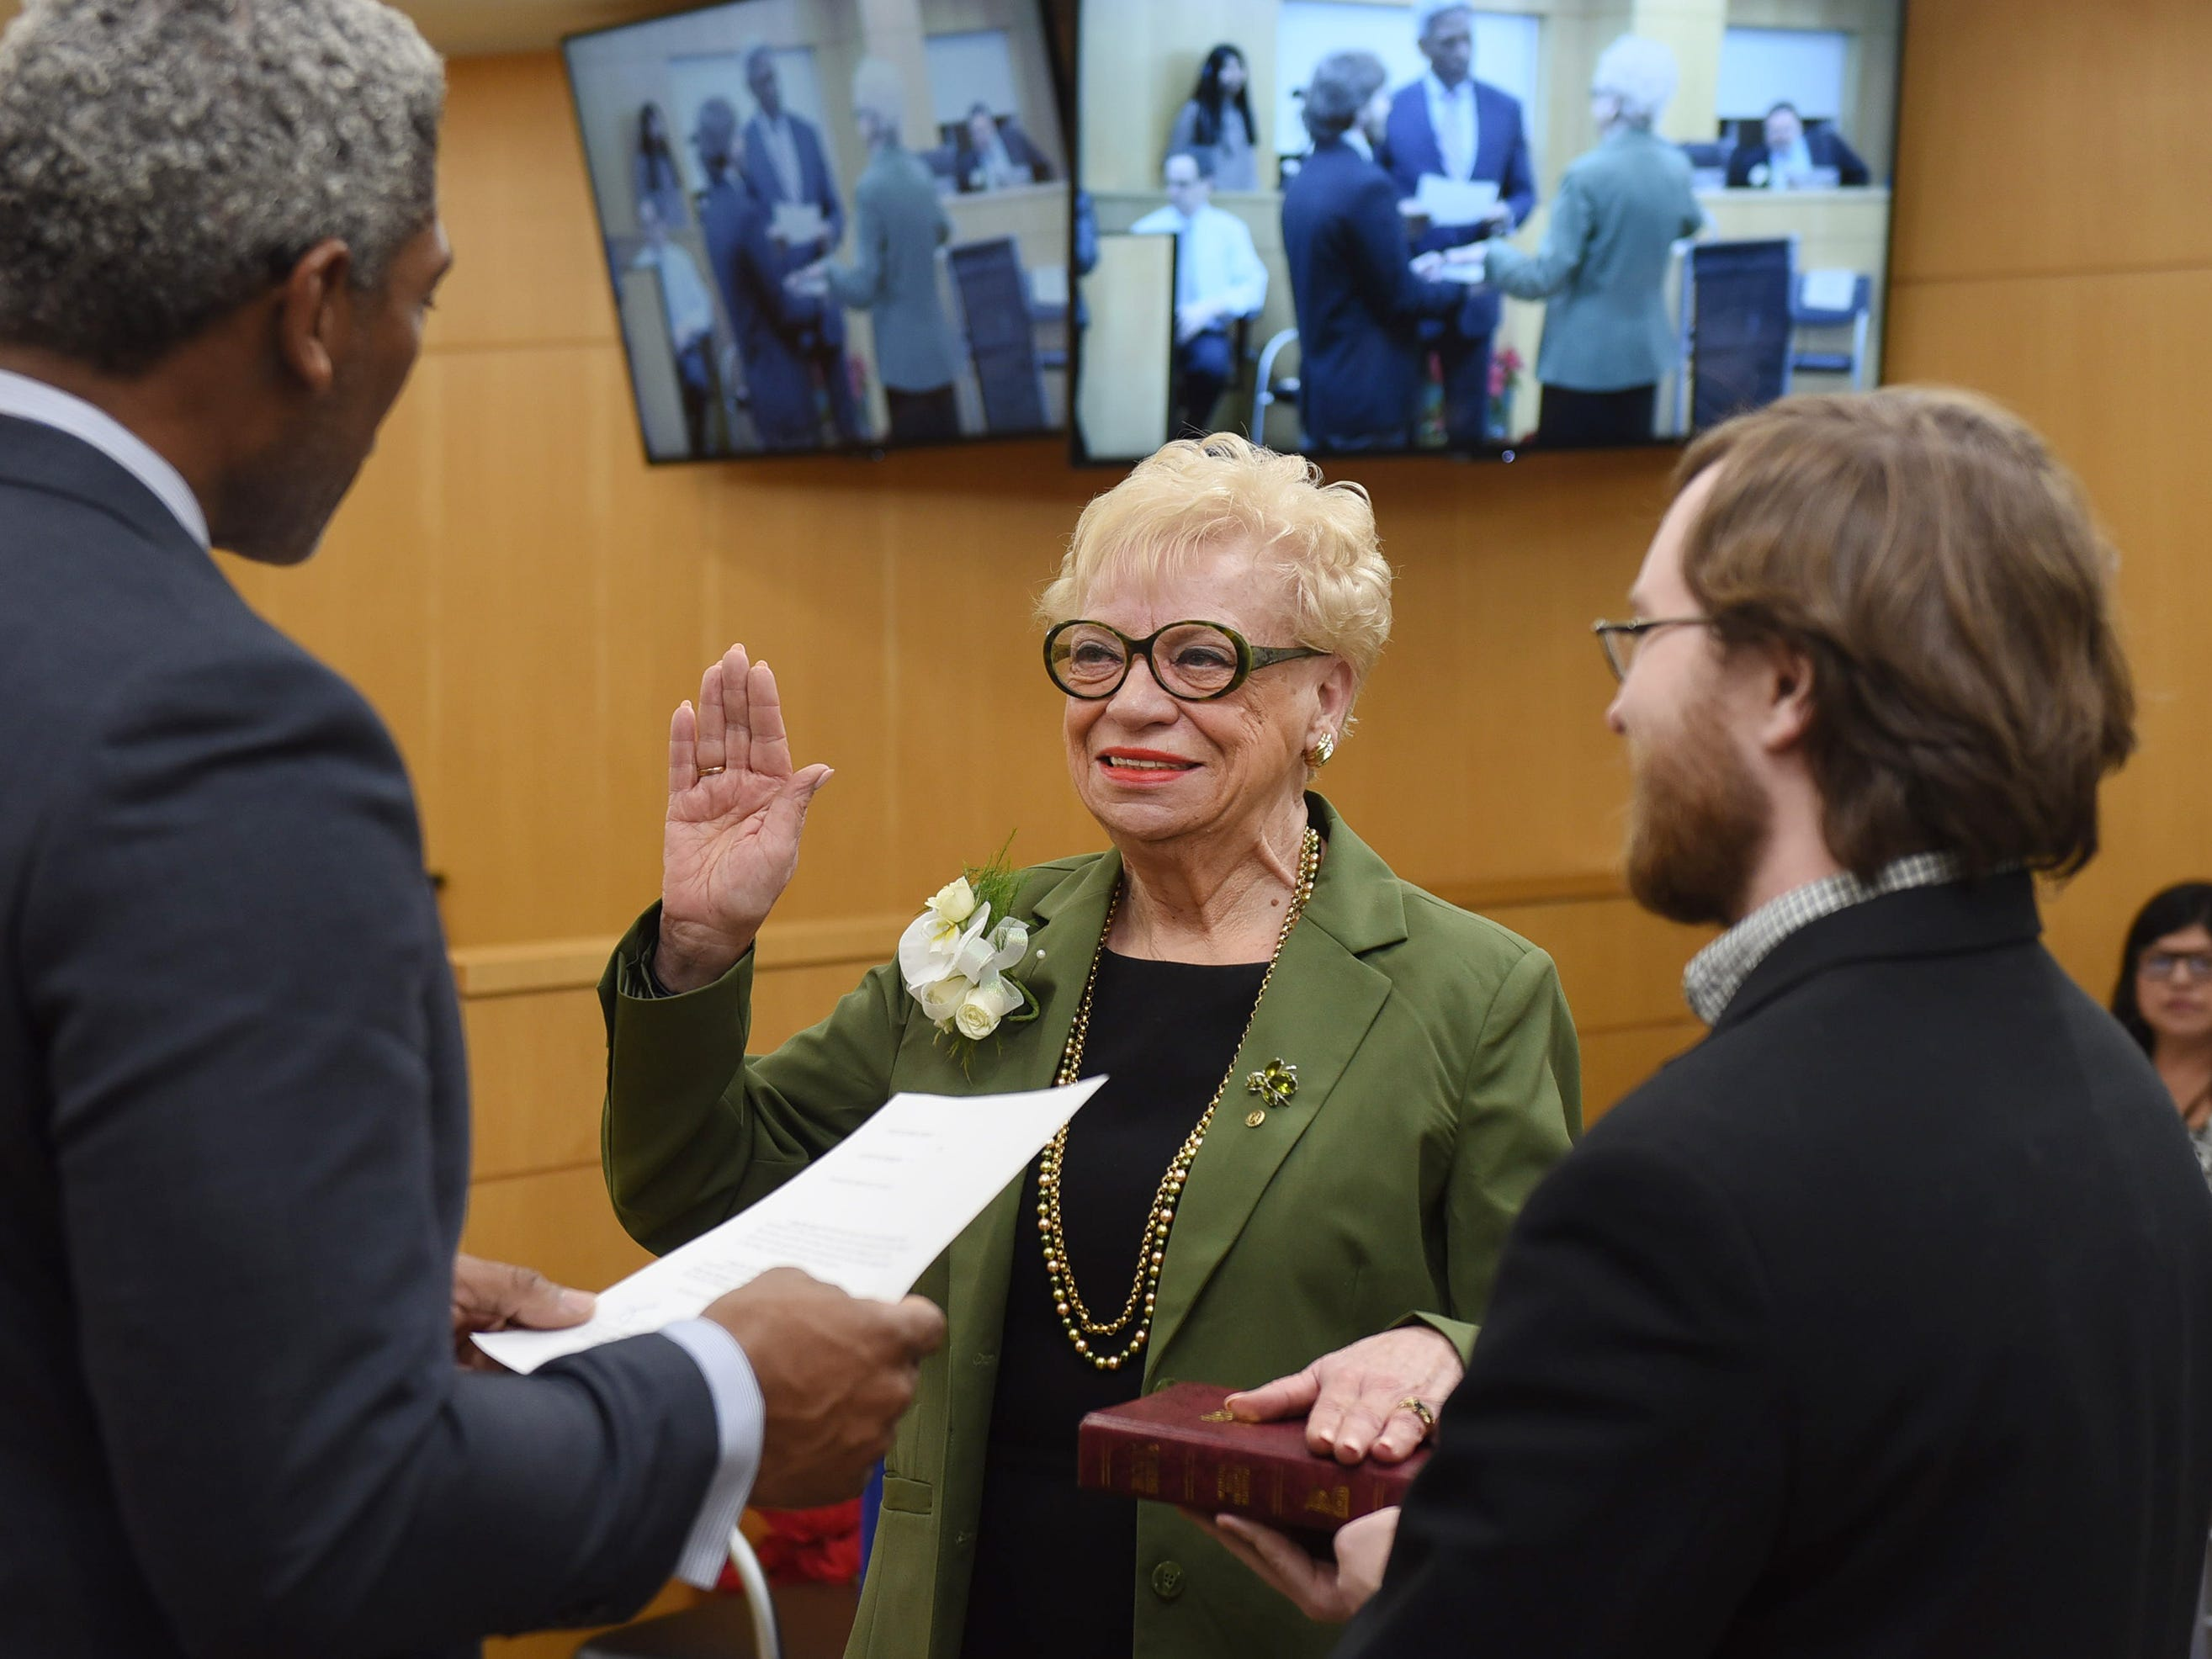 Joan Voss is sworn in as Chair Pro Tempore by Julien X. Neals Esq., Administered by Acting County Administrator during the annual Bergen County freeholder board's reorganization meeting at Bergen County Plaza in Hackensack on 01/07/19.